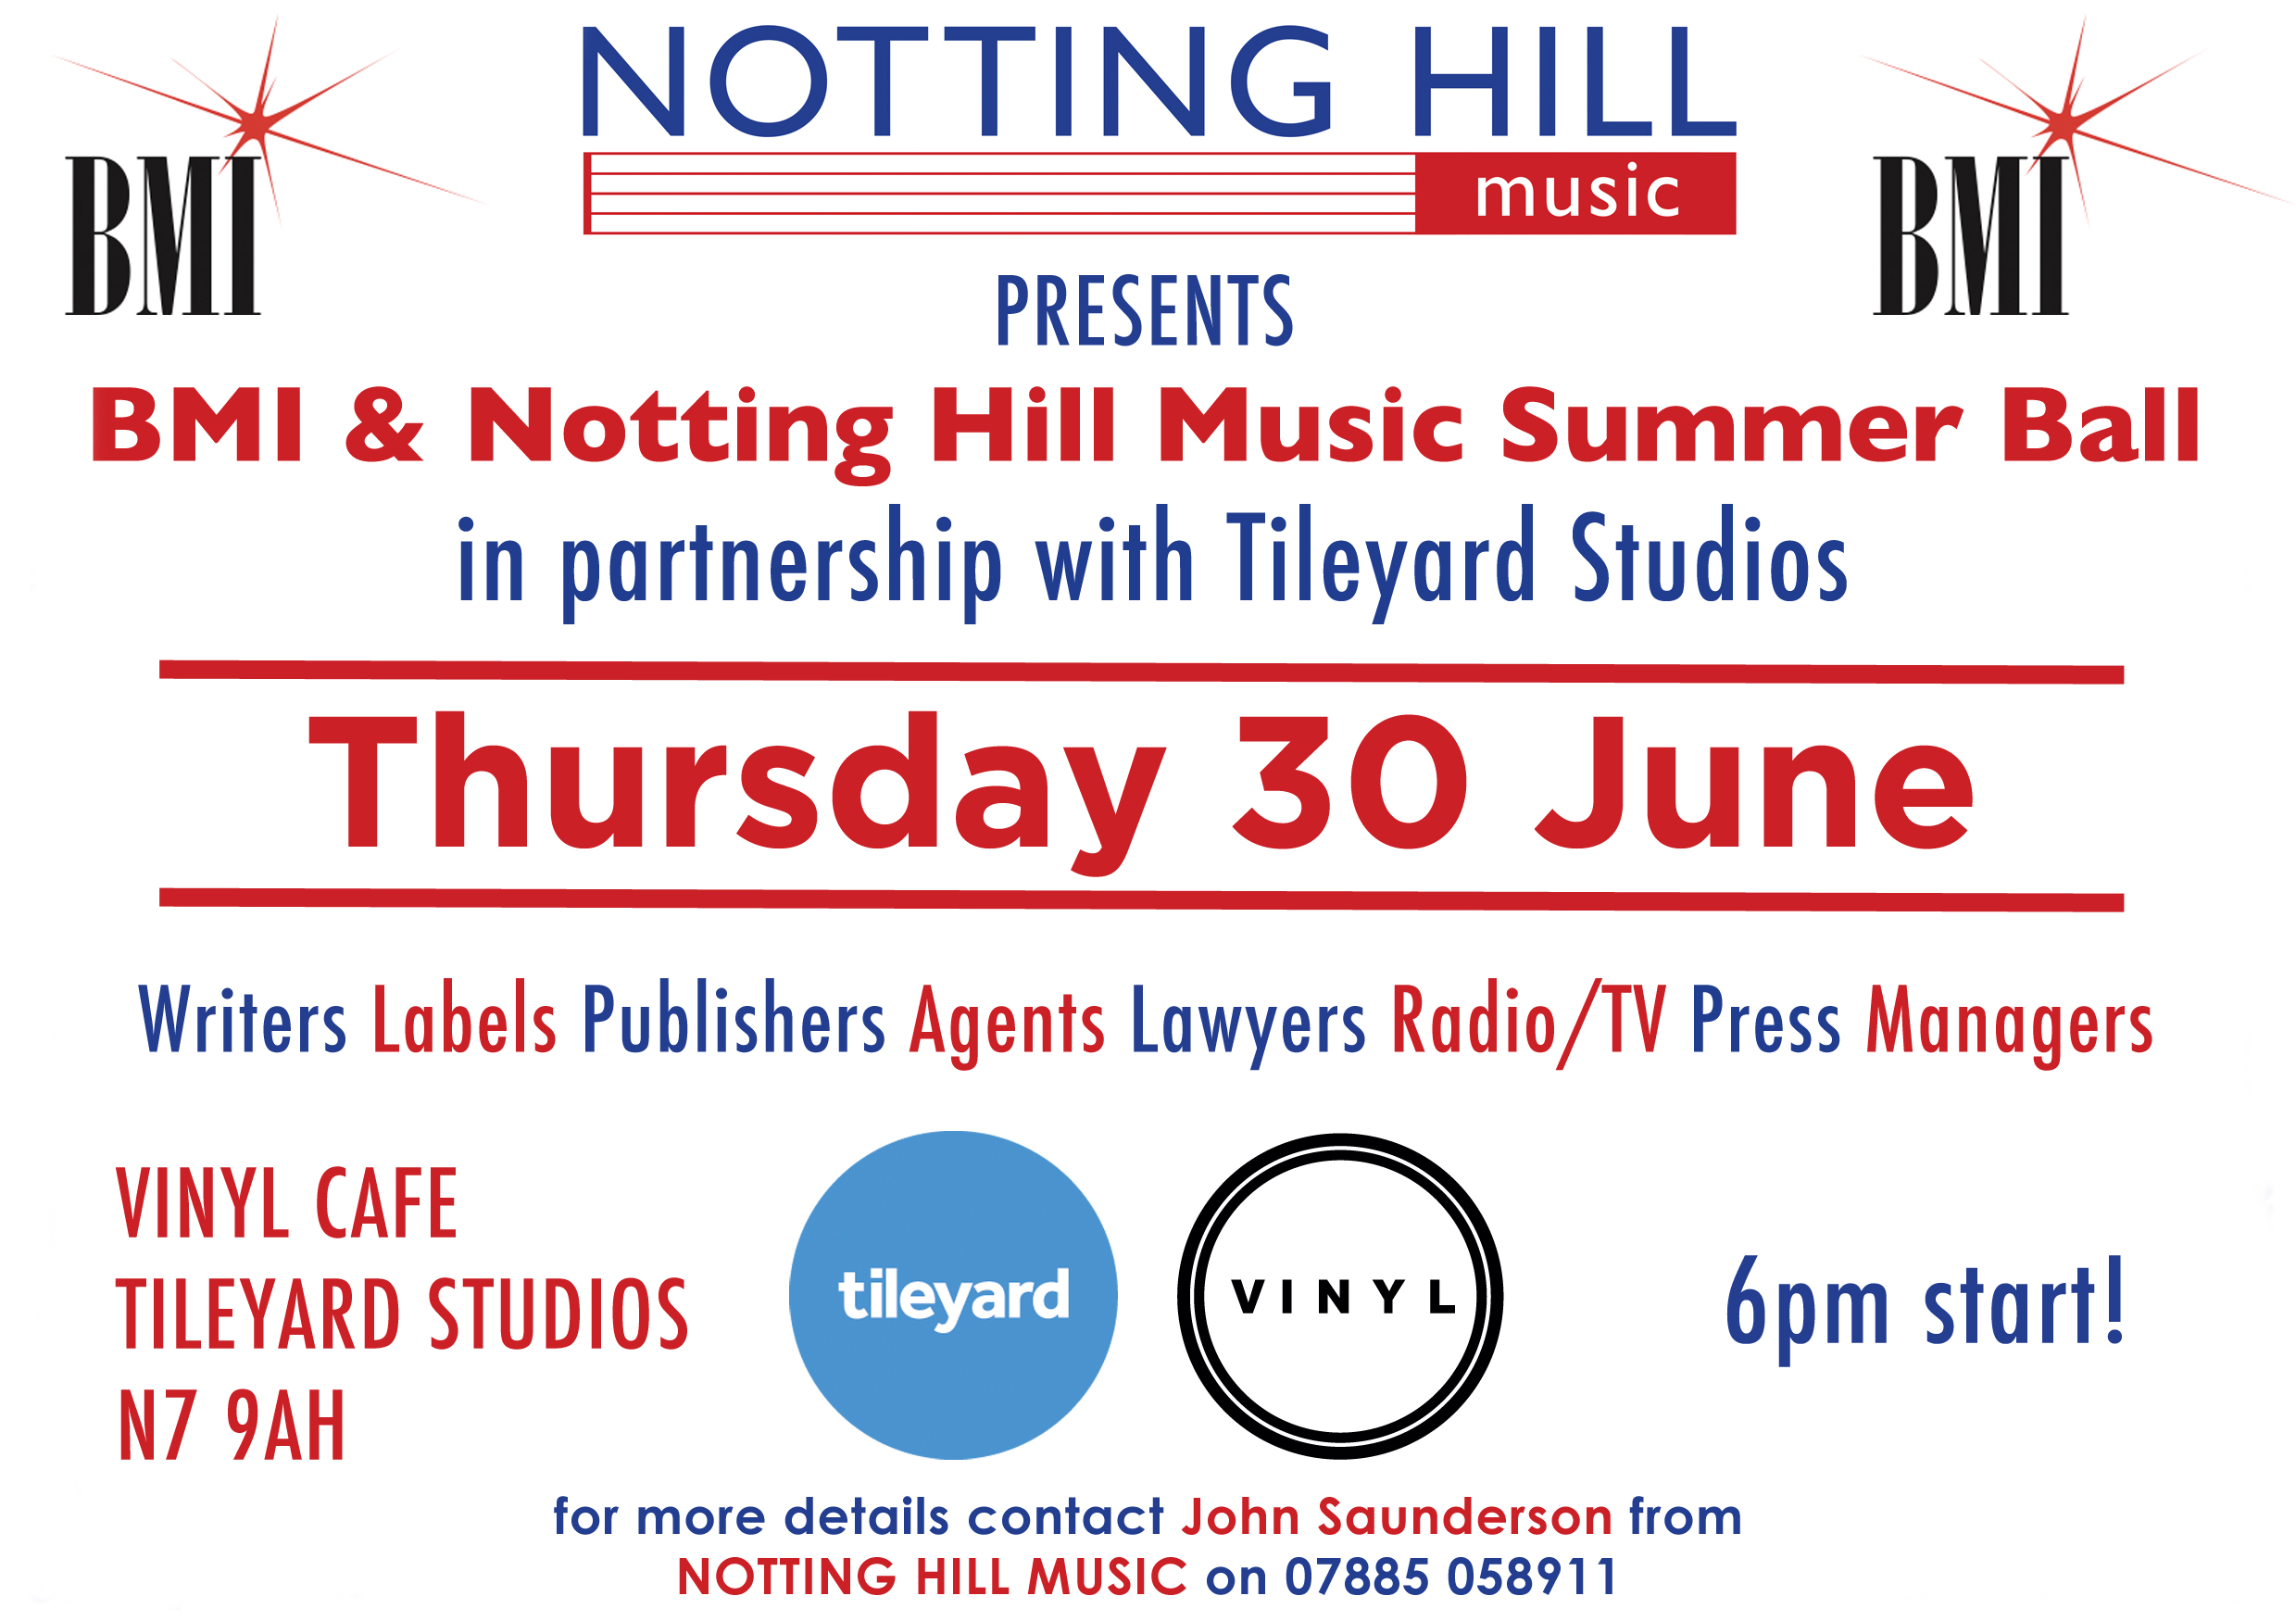 Thursday 30th June!